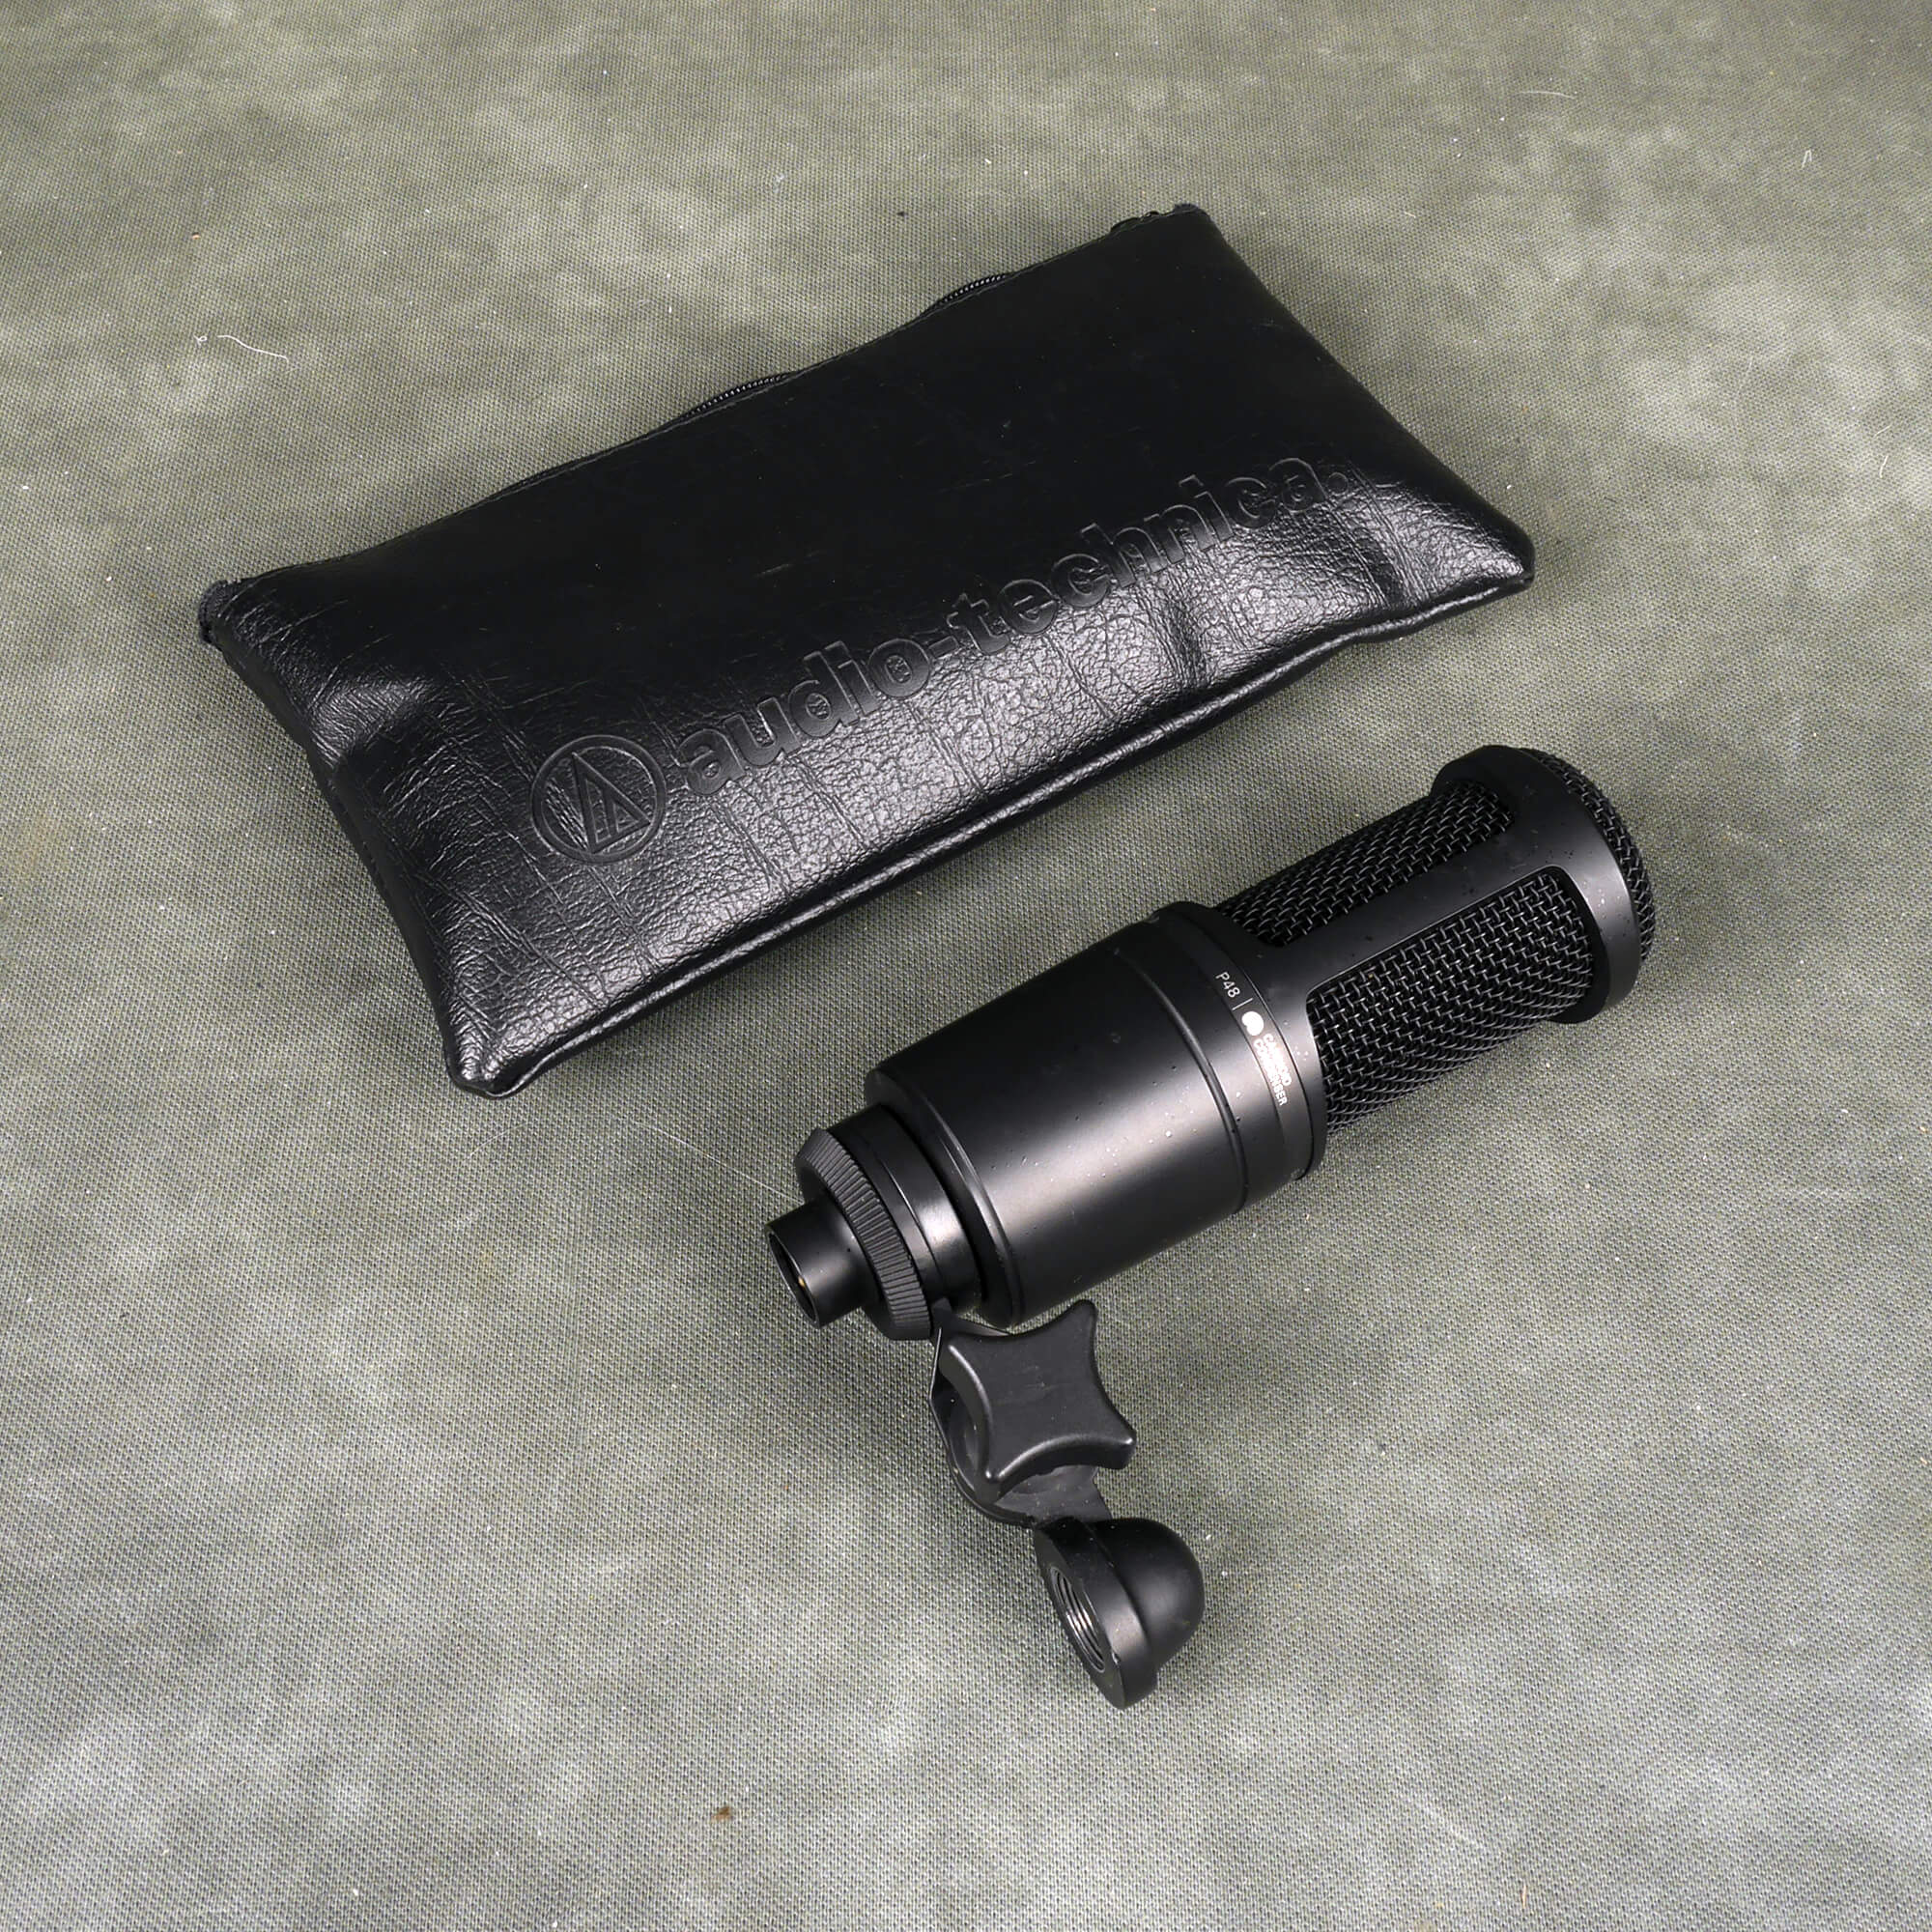 Audio Technica AT2020 Condenser Mic w/Bag - 2nd Hand